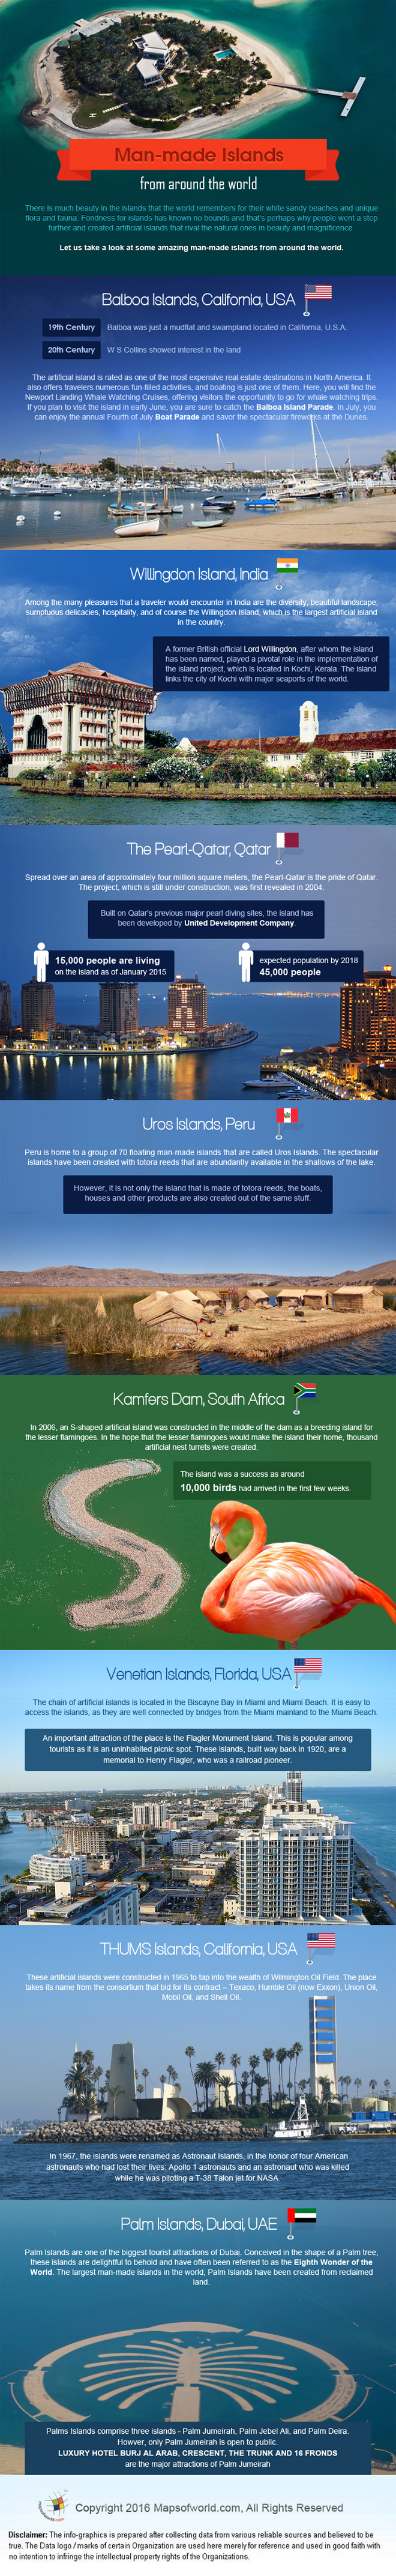 Infographic on Man-made islands